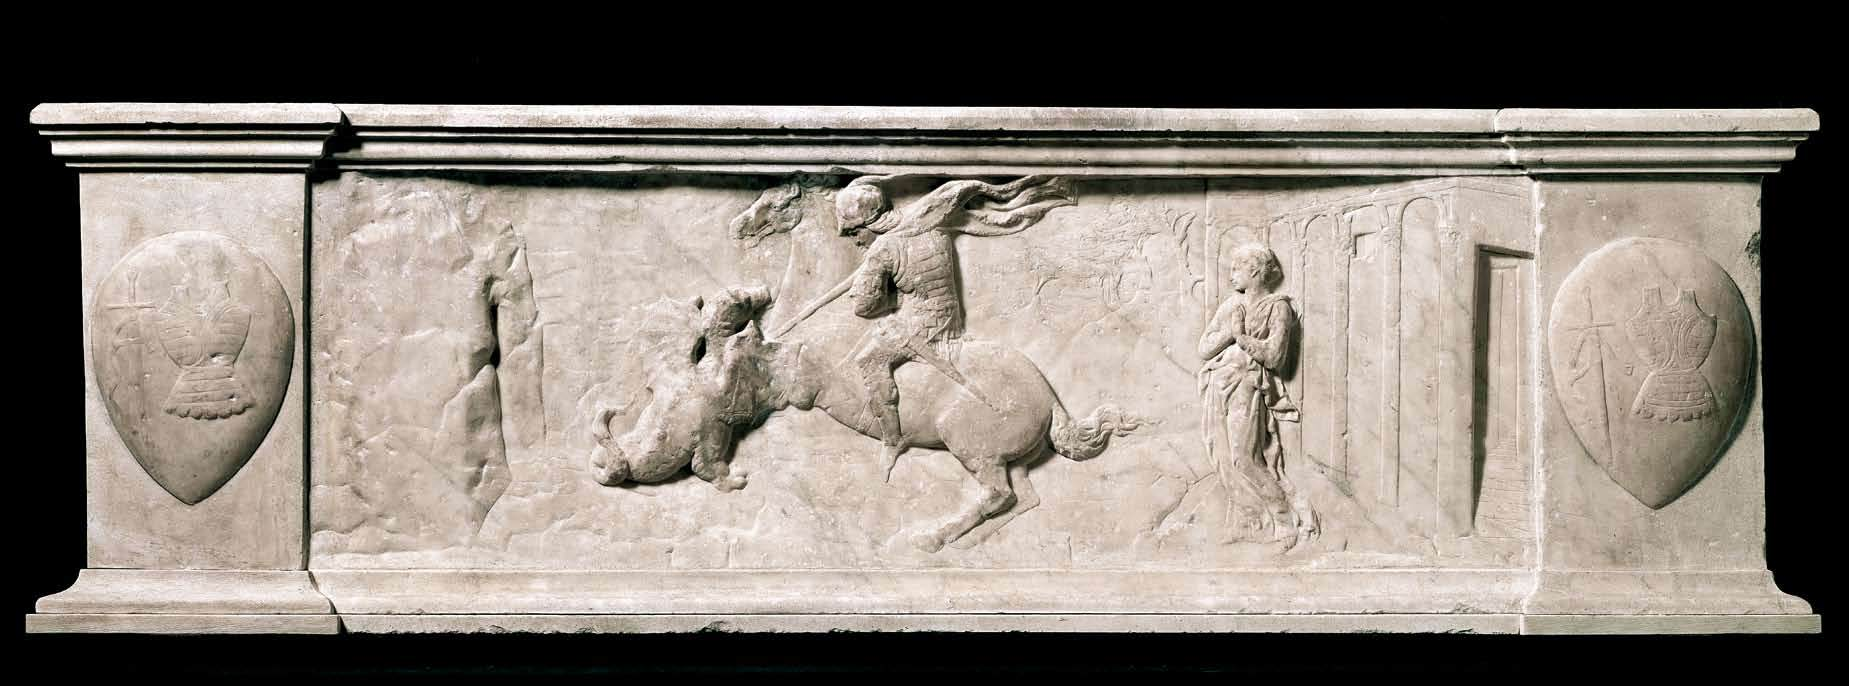 Saint George and the Dragon, cr. 1416, Donatello, Florence, Italy